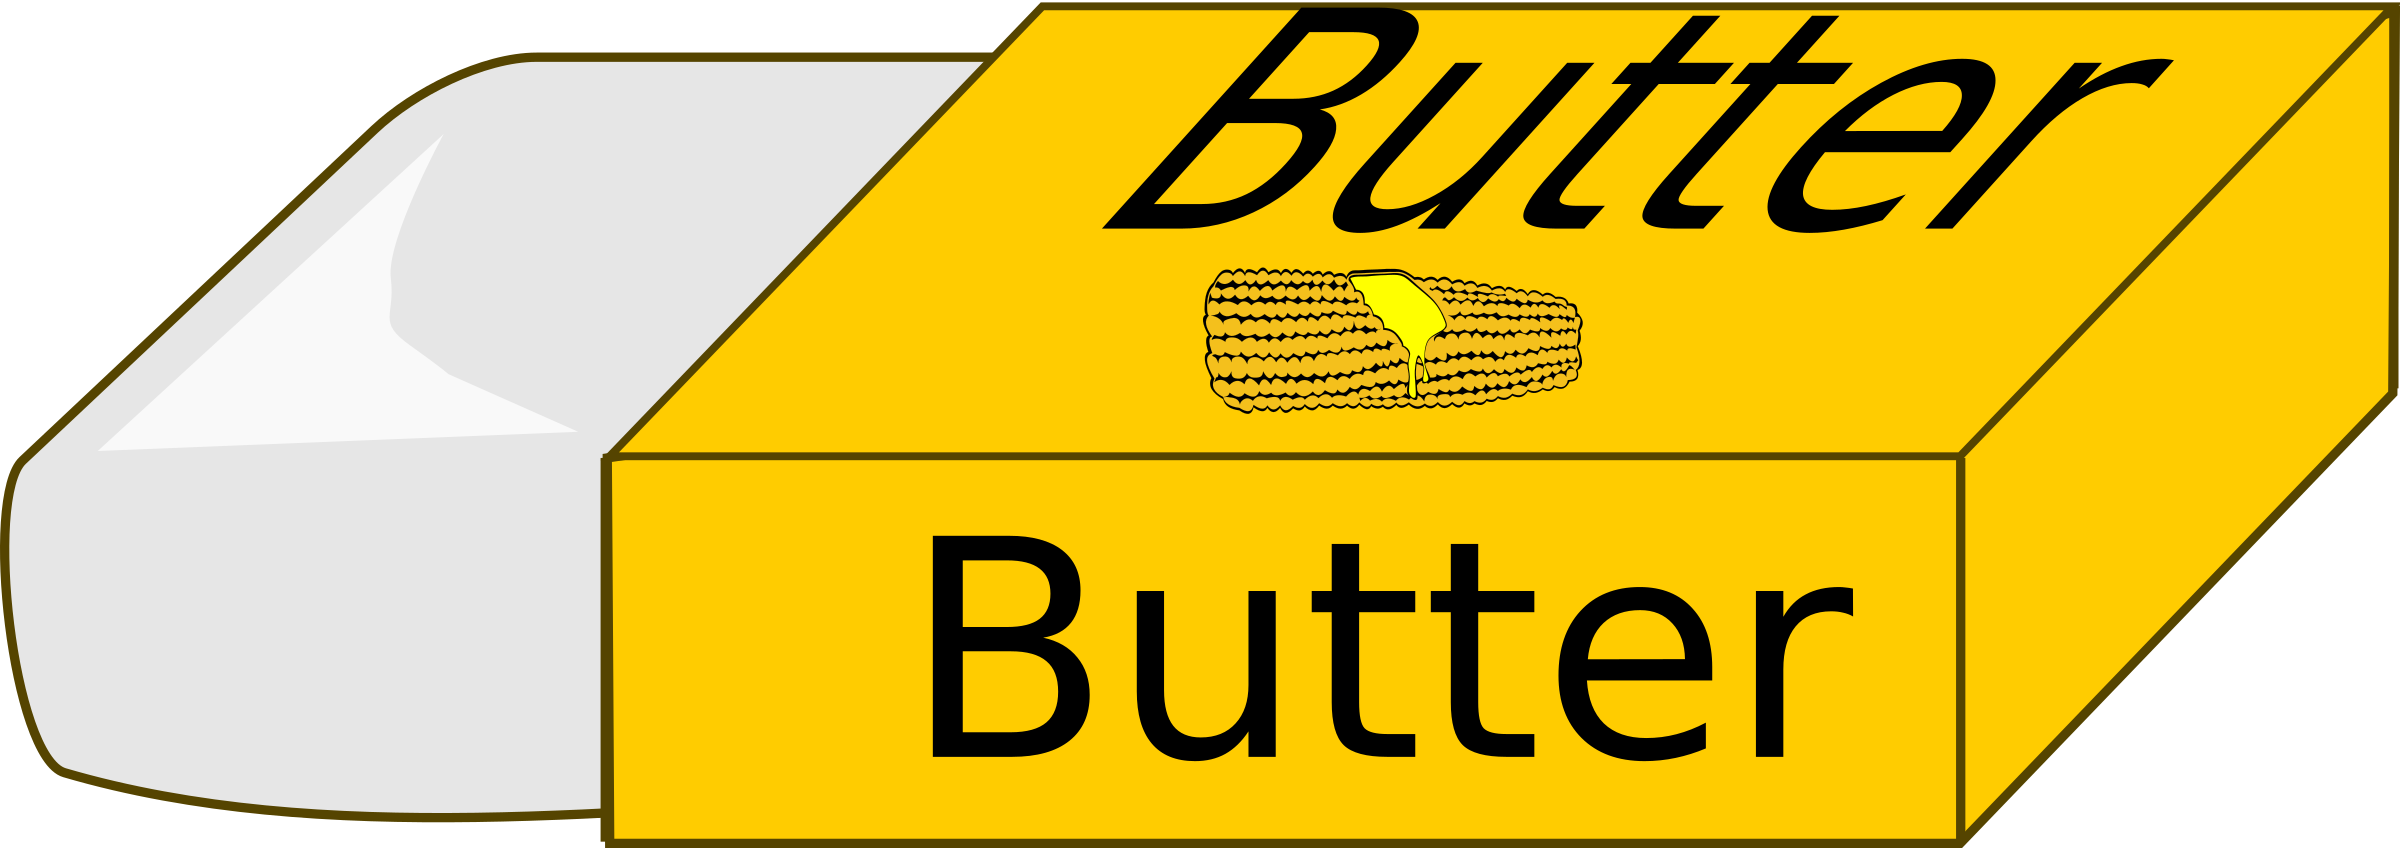 Butter by evilestmark